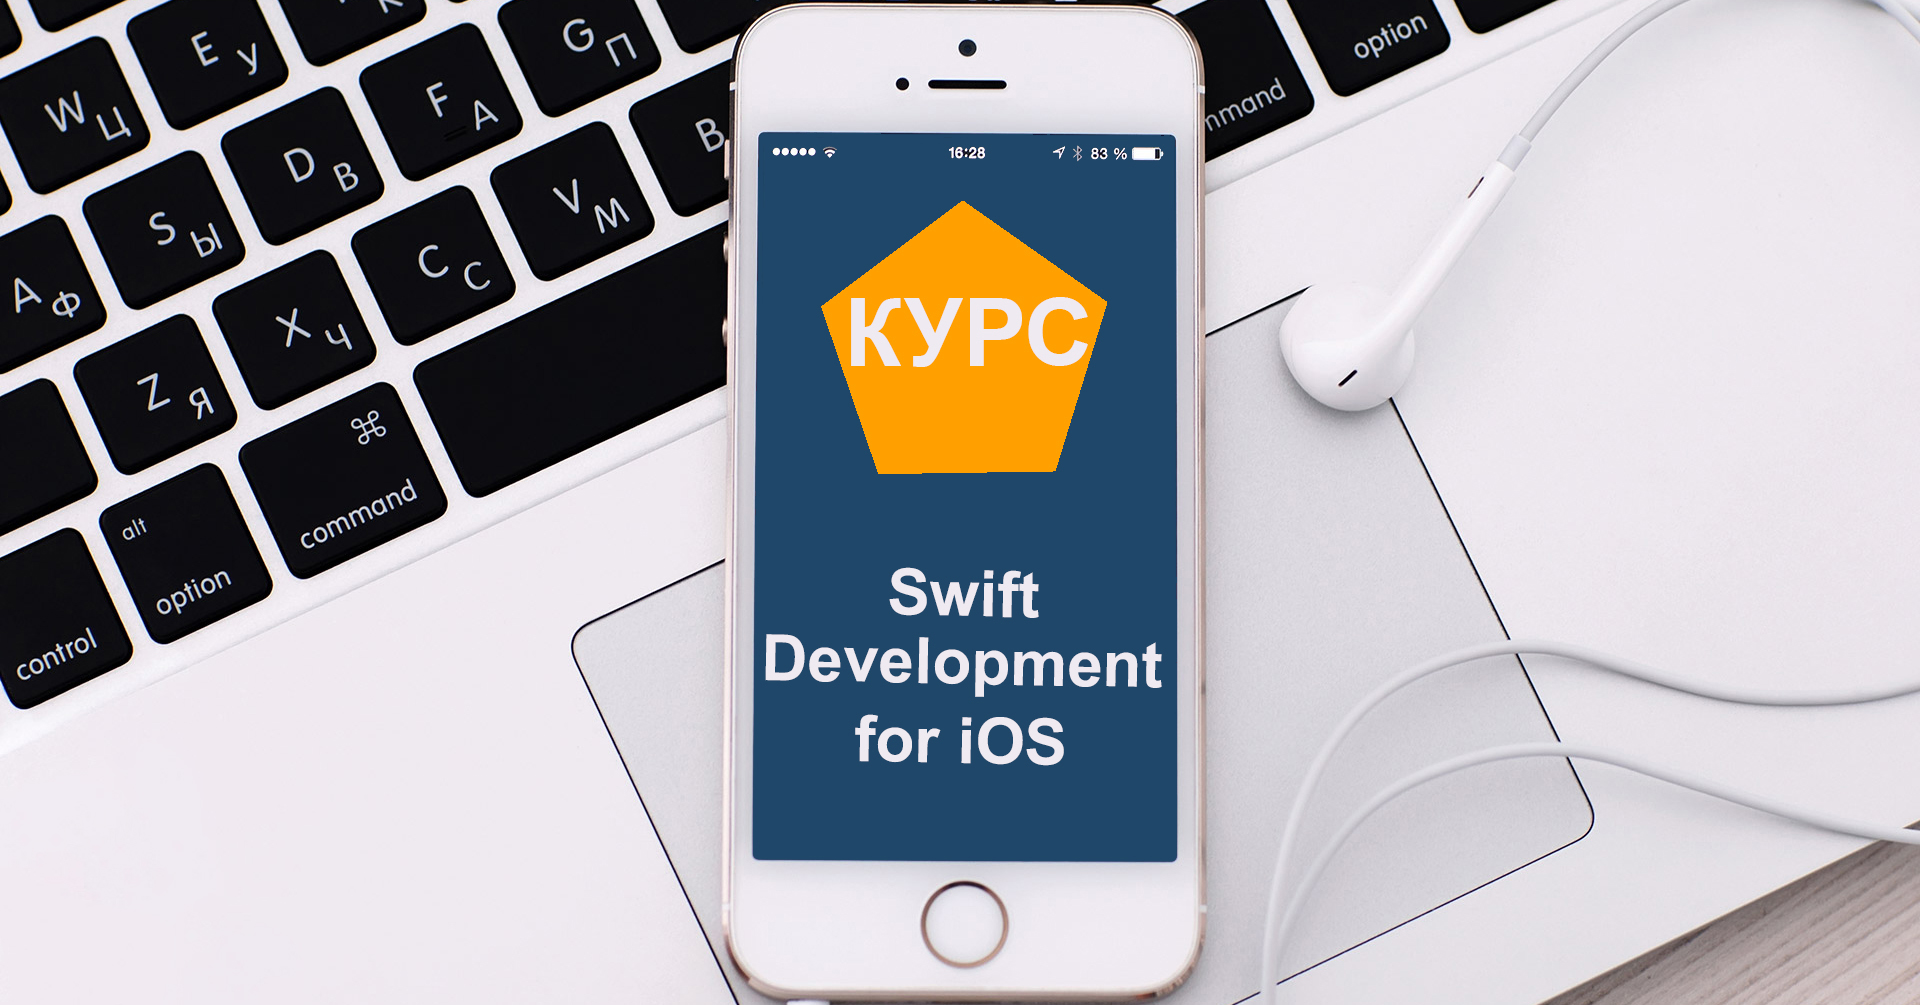 Swift Development for iOS icon